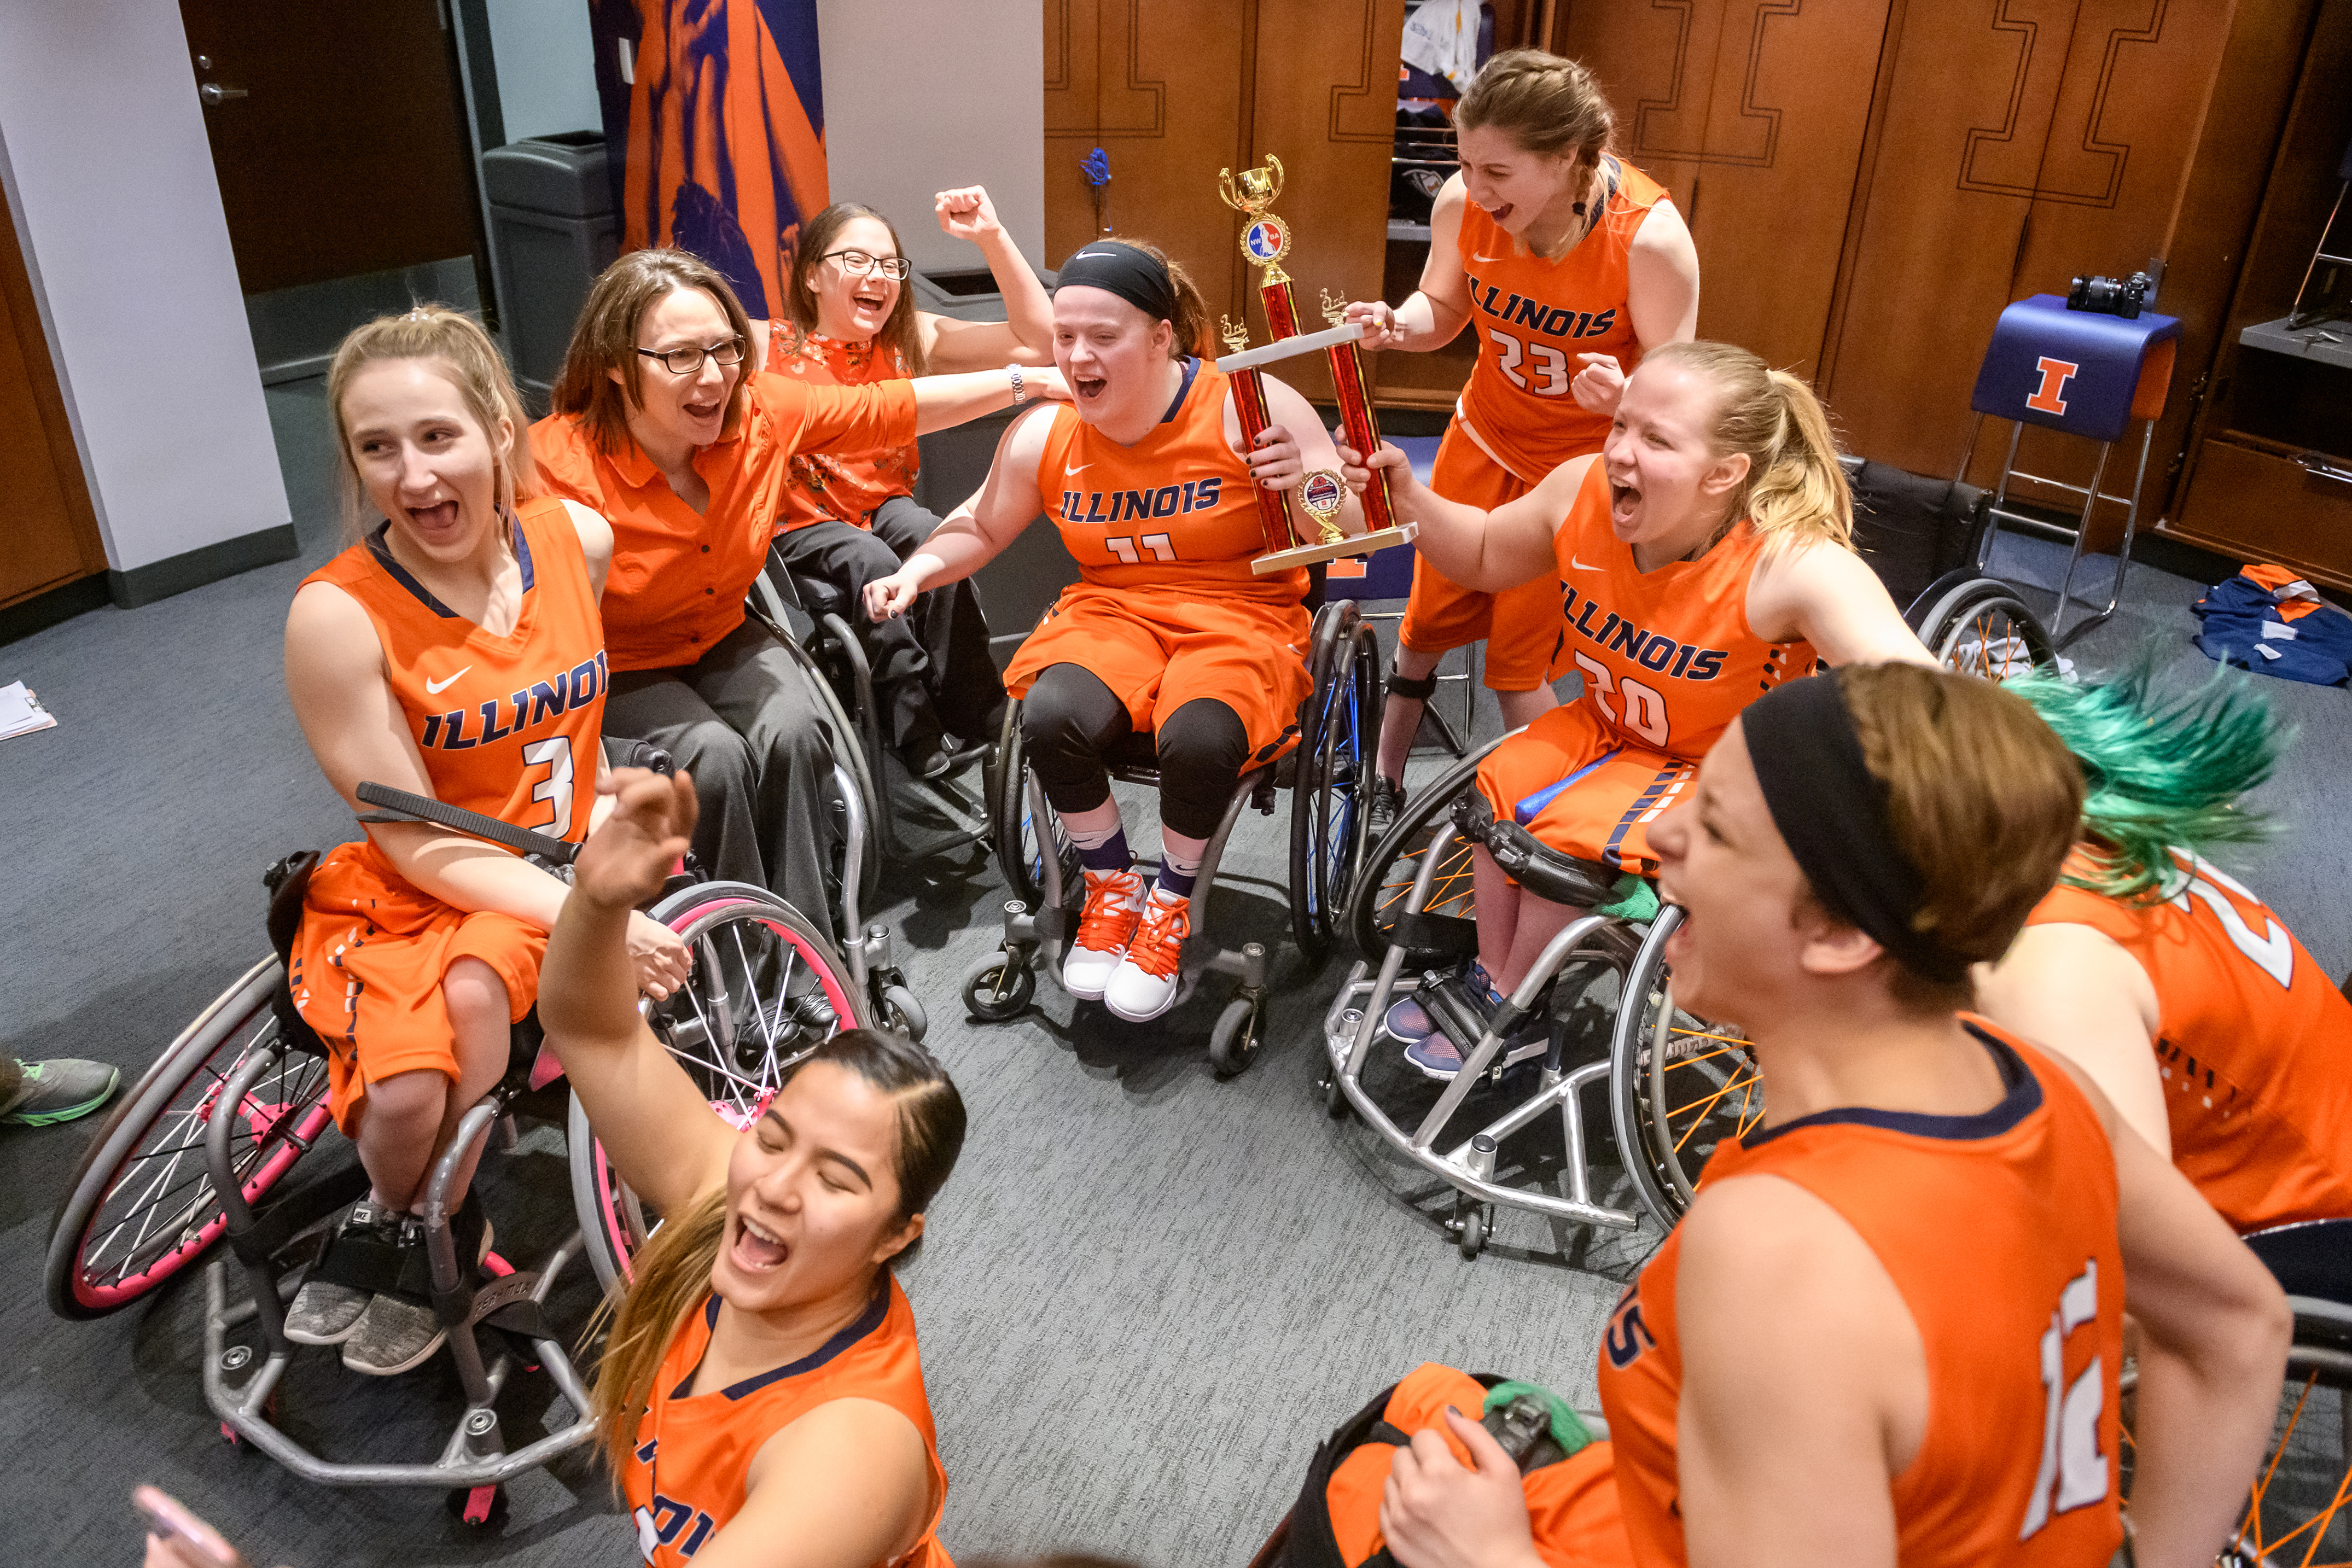 Illinois Women's Wheelchair Basketball Celebrating their 3rd place win in the locker room at State Farm Center